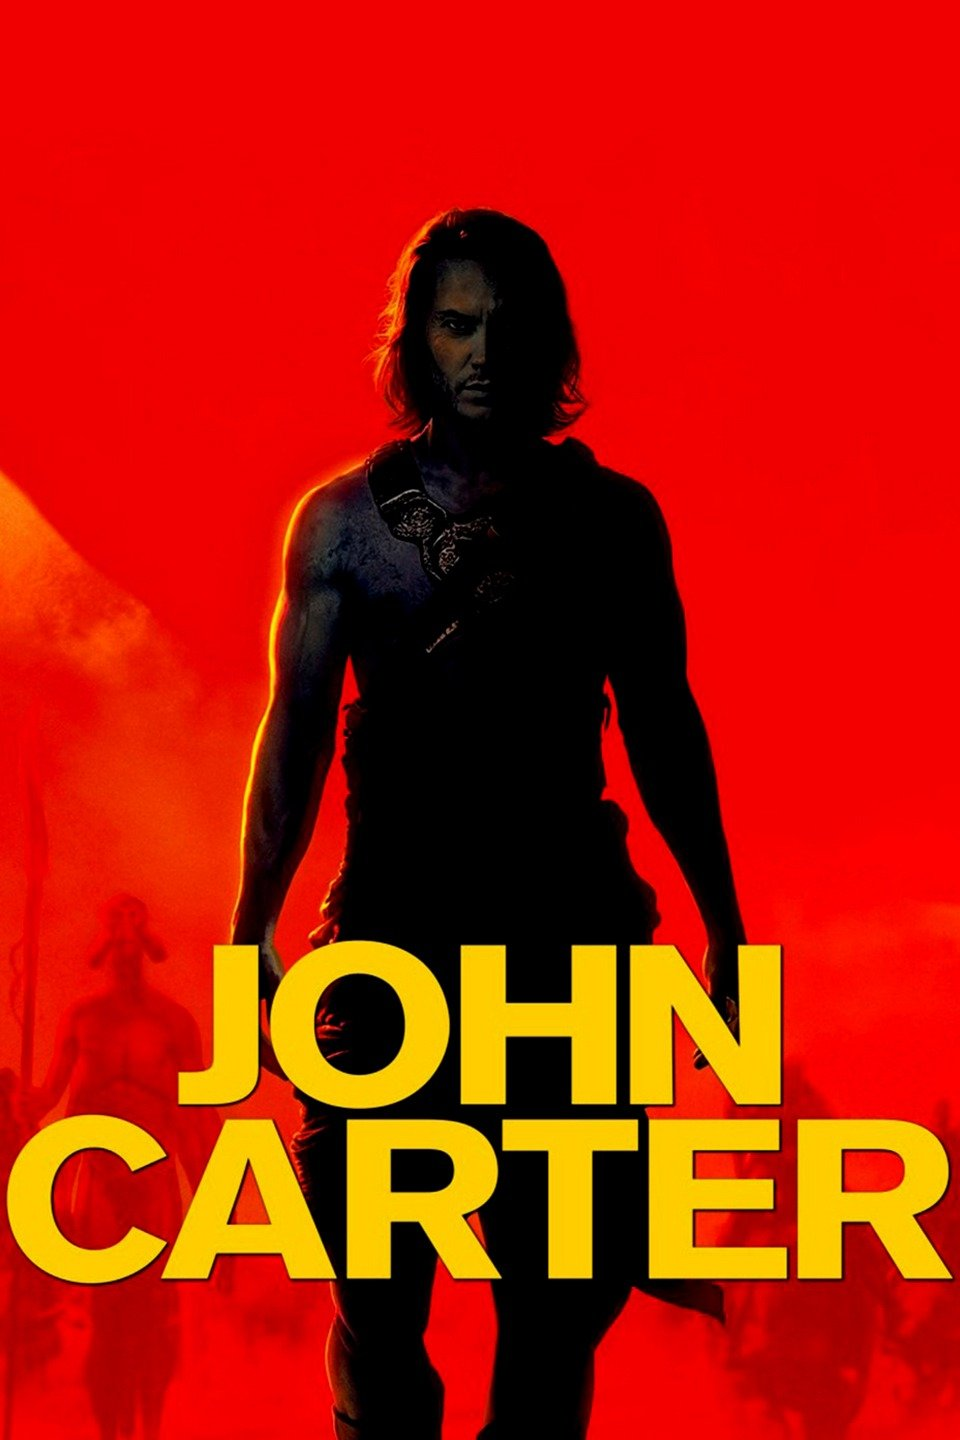 John Carter (2012) - Directed by: Andrew StantonStarring: Taylor Kitsch, Lynn Collins, Willem Dafoe, Thomas Haden Church, Samantha Morton, Mark Strong, Ciaran Hinds, Dominic West, Bryan CranstonRated: PG-13 for Intense Sequences of Violence and ActionRunning Time: 2 h 12 mTMM Score: 2.5 stars out of 5STRENGTHS: Fun, Worldbuilding, Pacing, Most CGIWEAKNESSES: Some CGI, Acting, Writing, Rushed Third Act, Tone